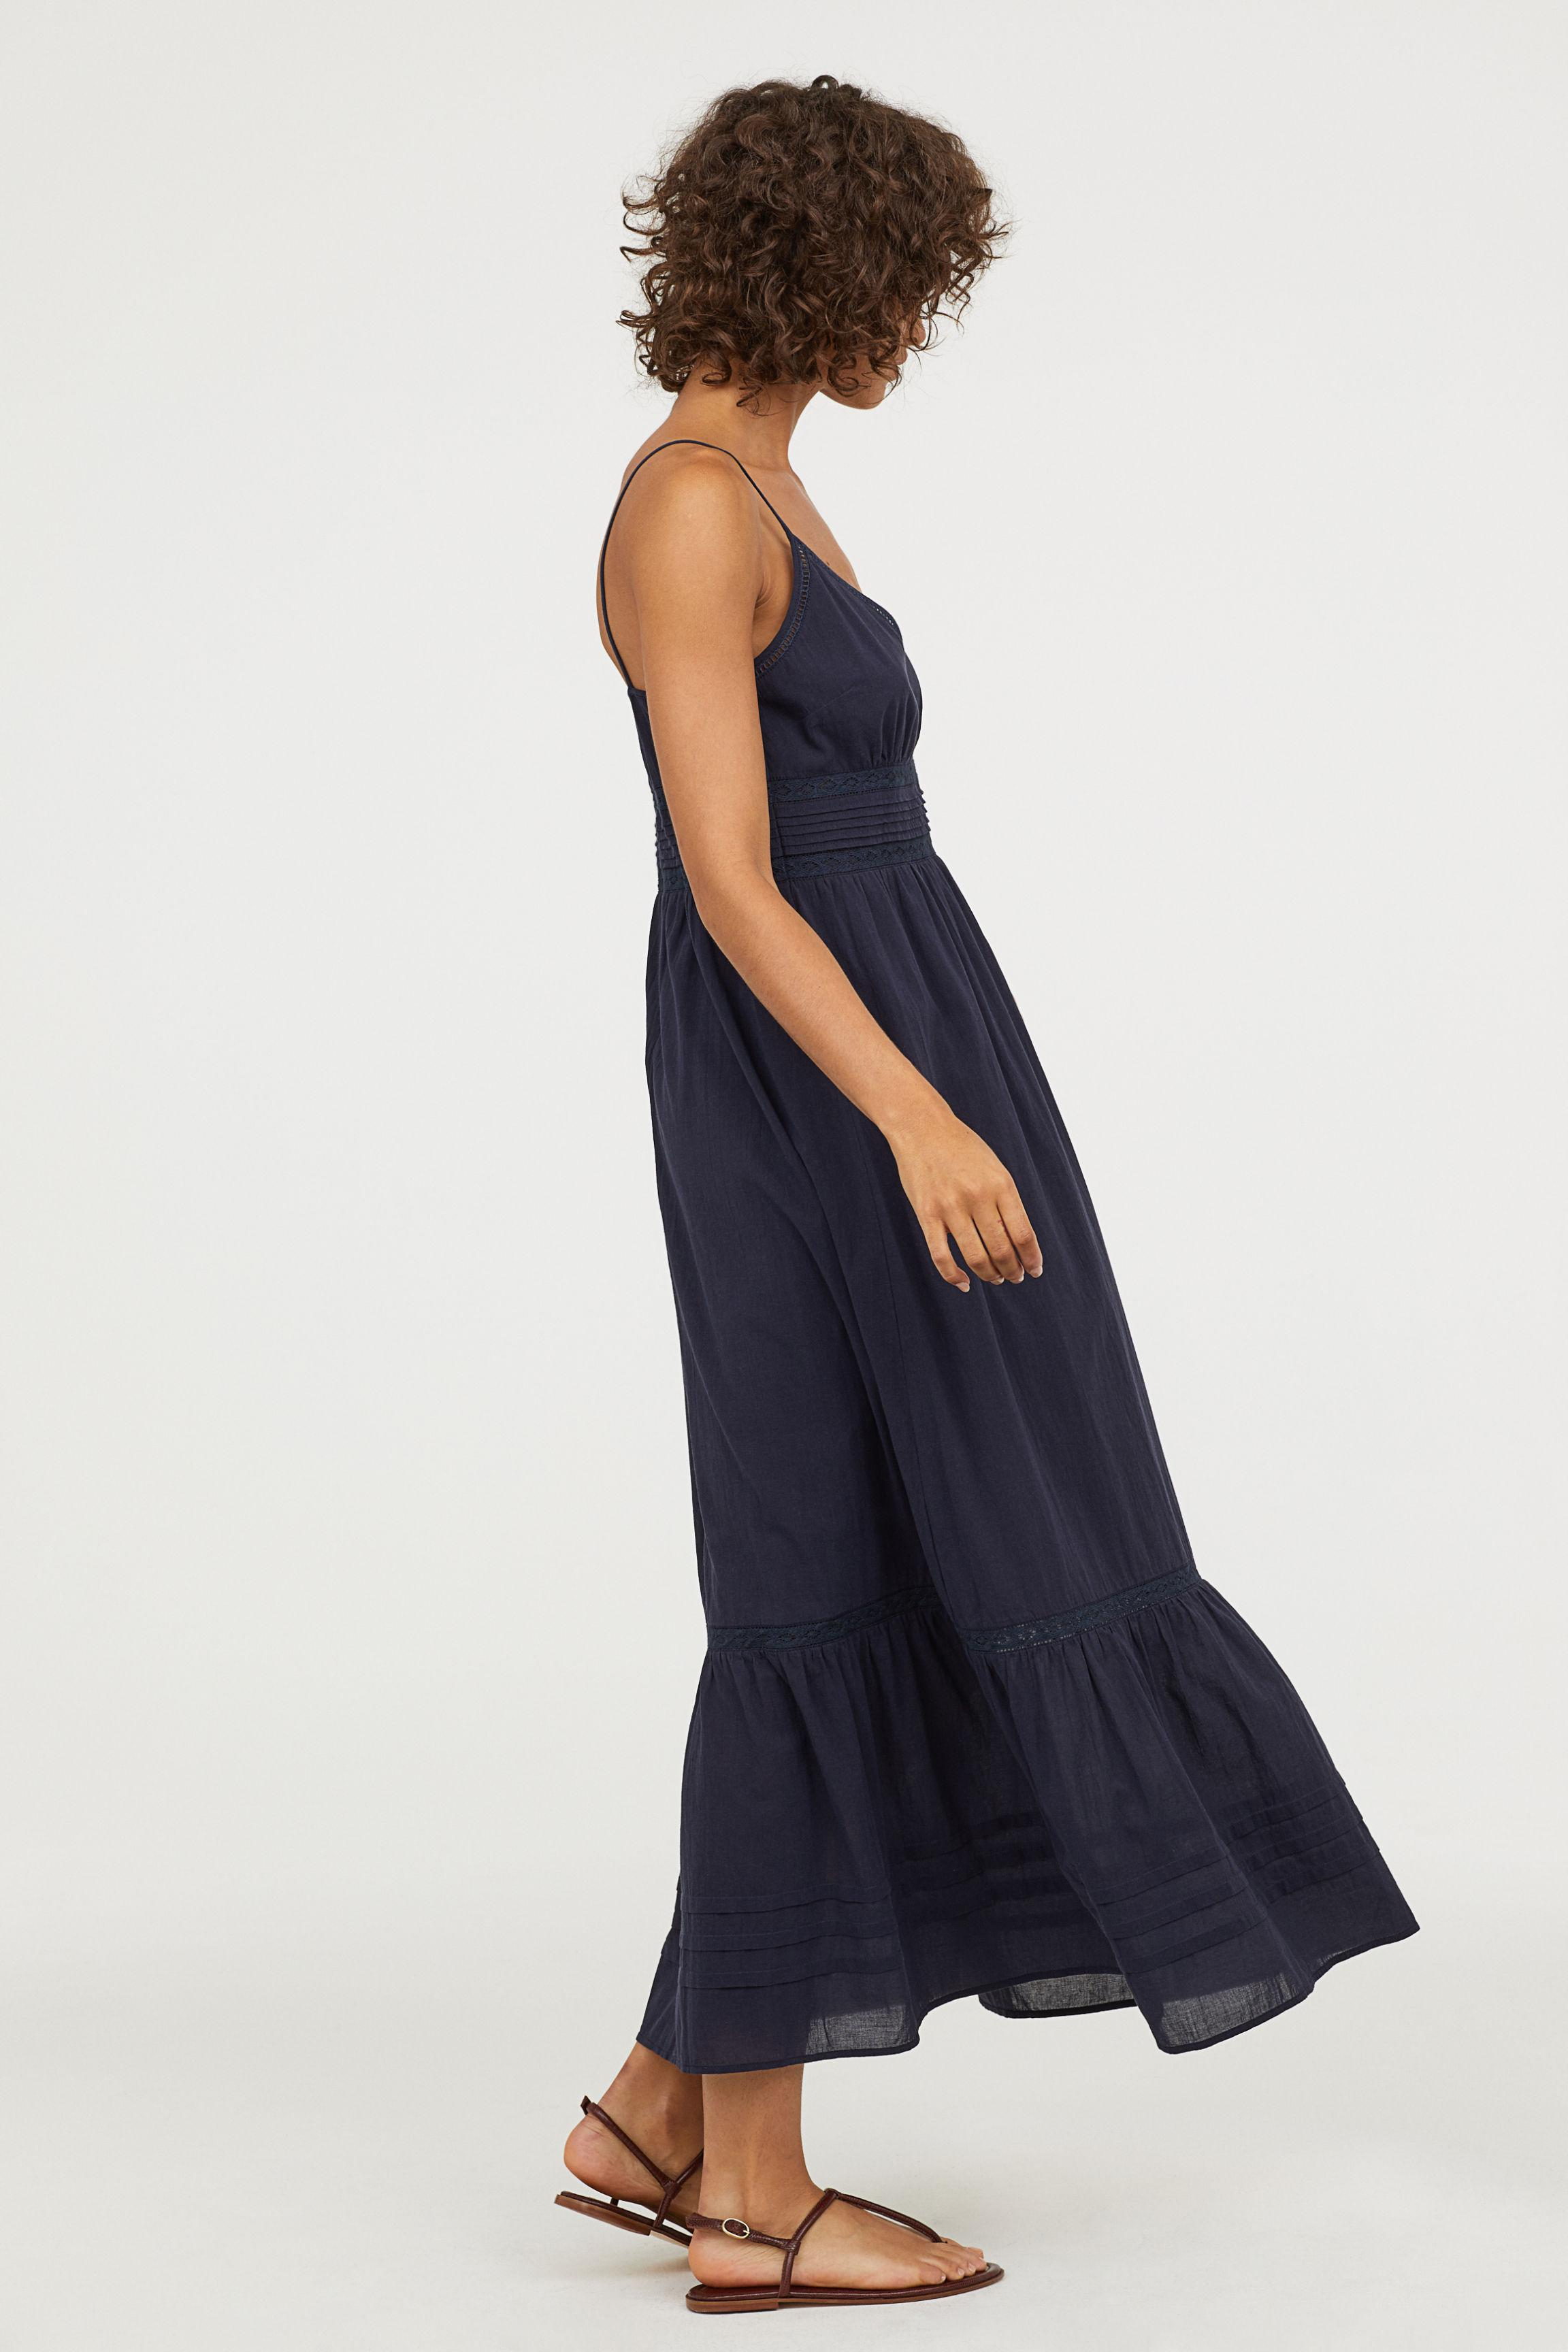 bb84e00cd9 H&M Cotton Long Dress With Lace Details in Blue - Lyst